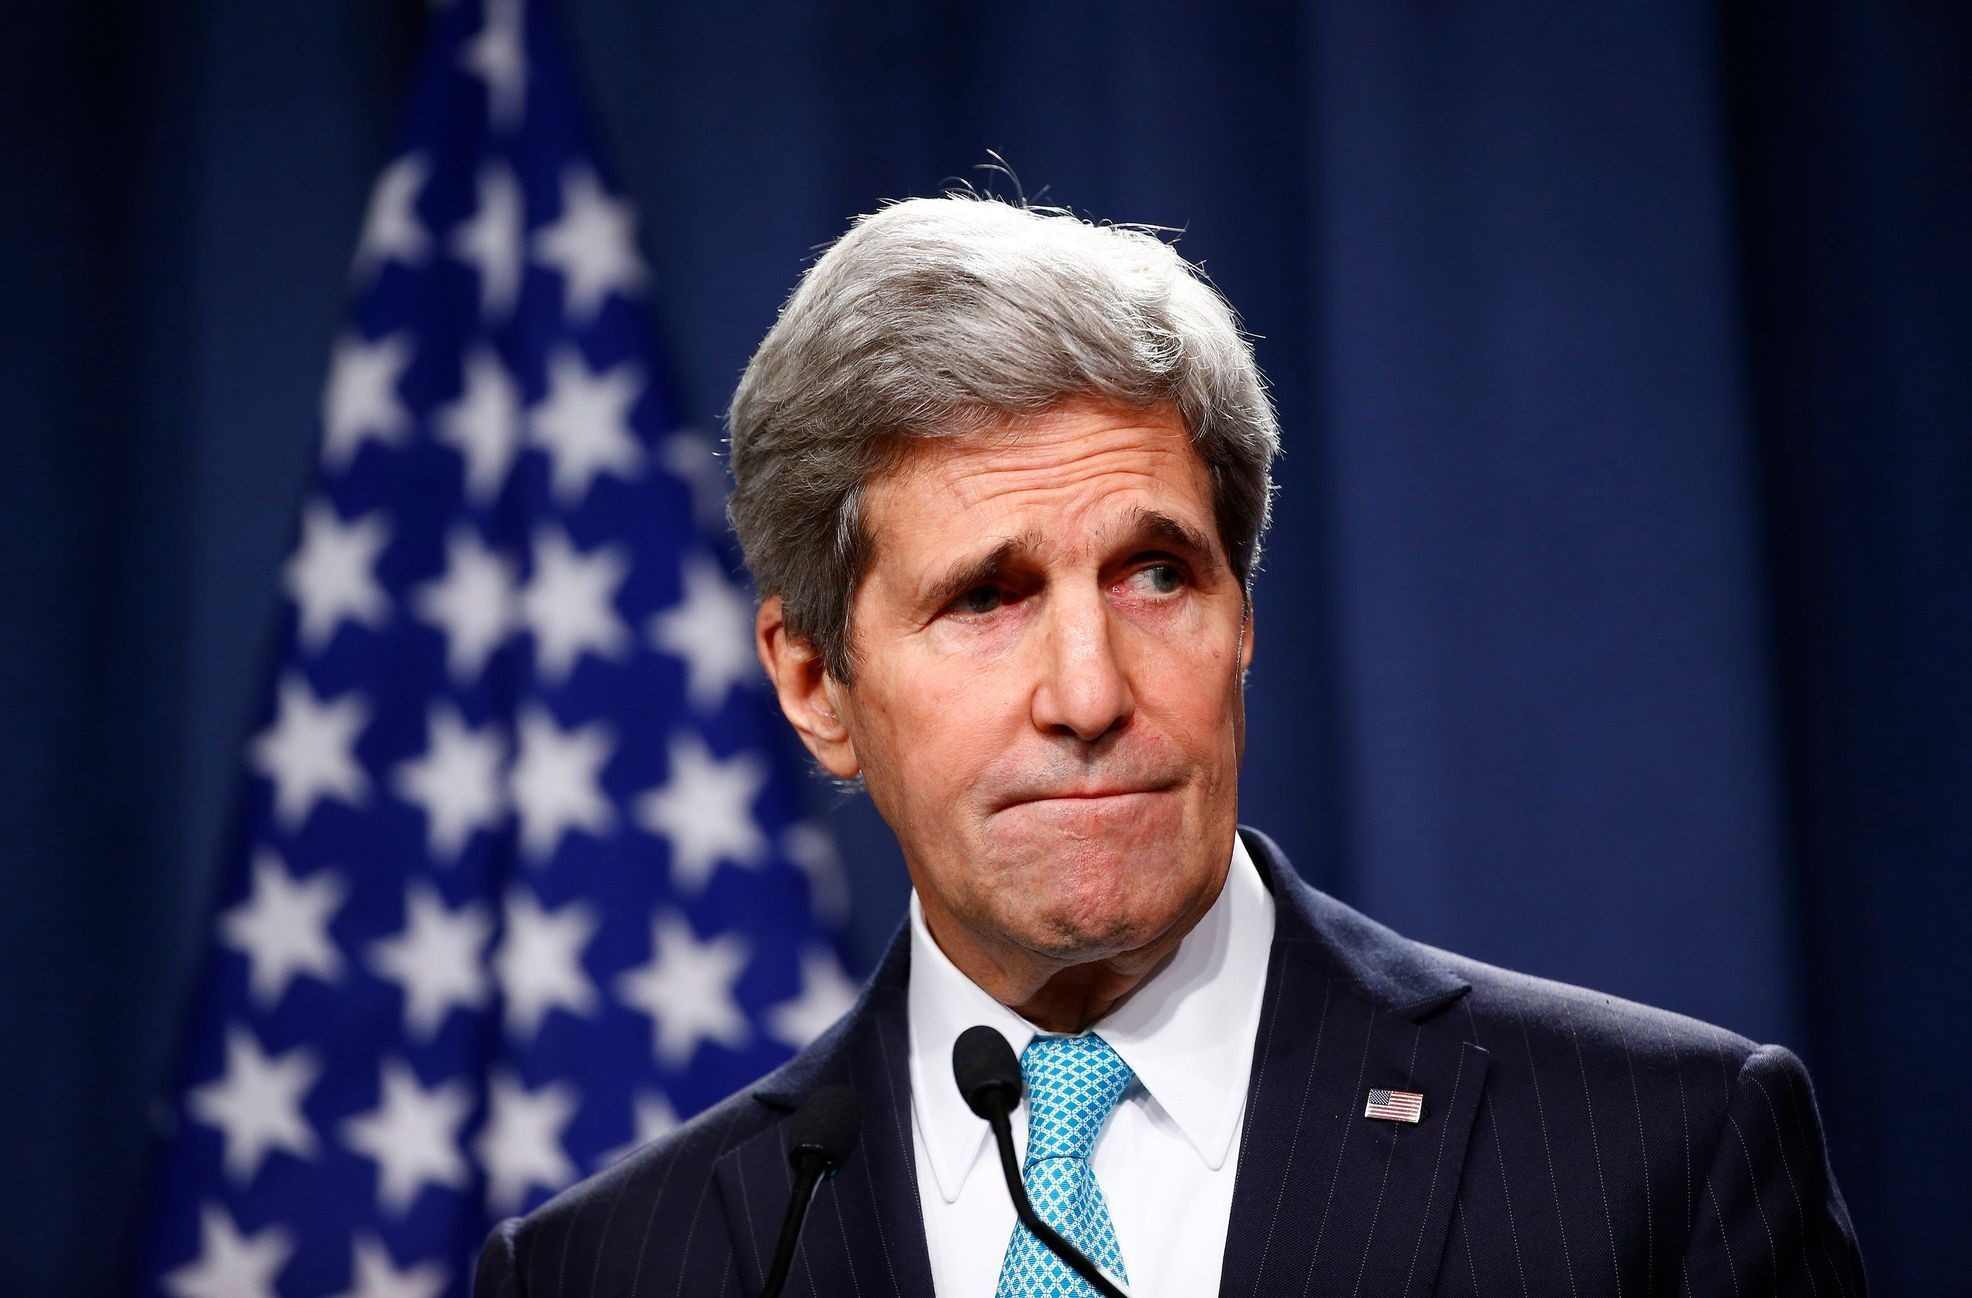 John Kerry attends media after talks on situation in Ukraine in Geneva